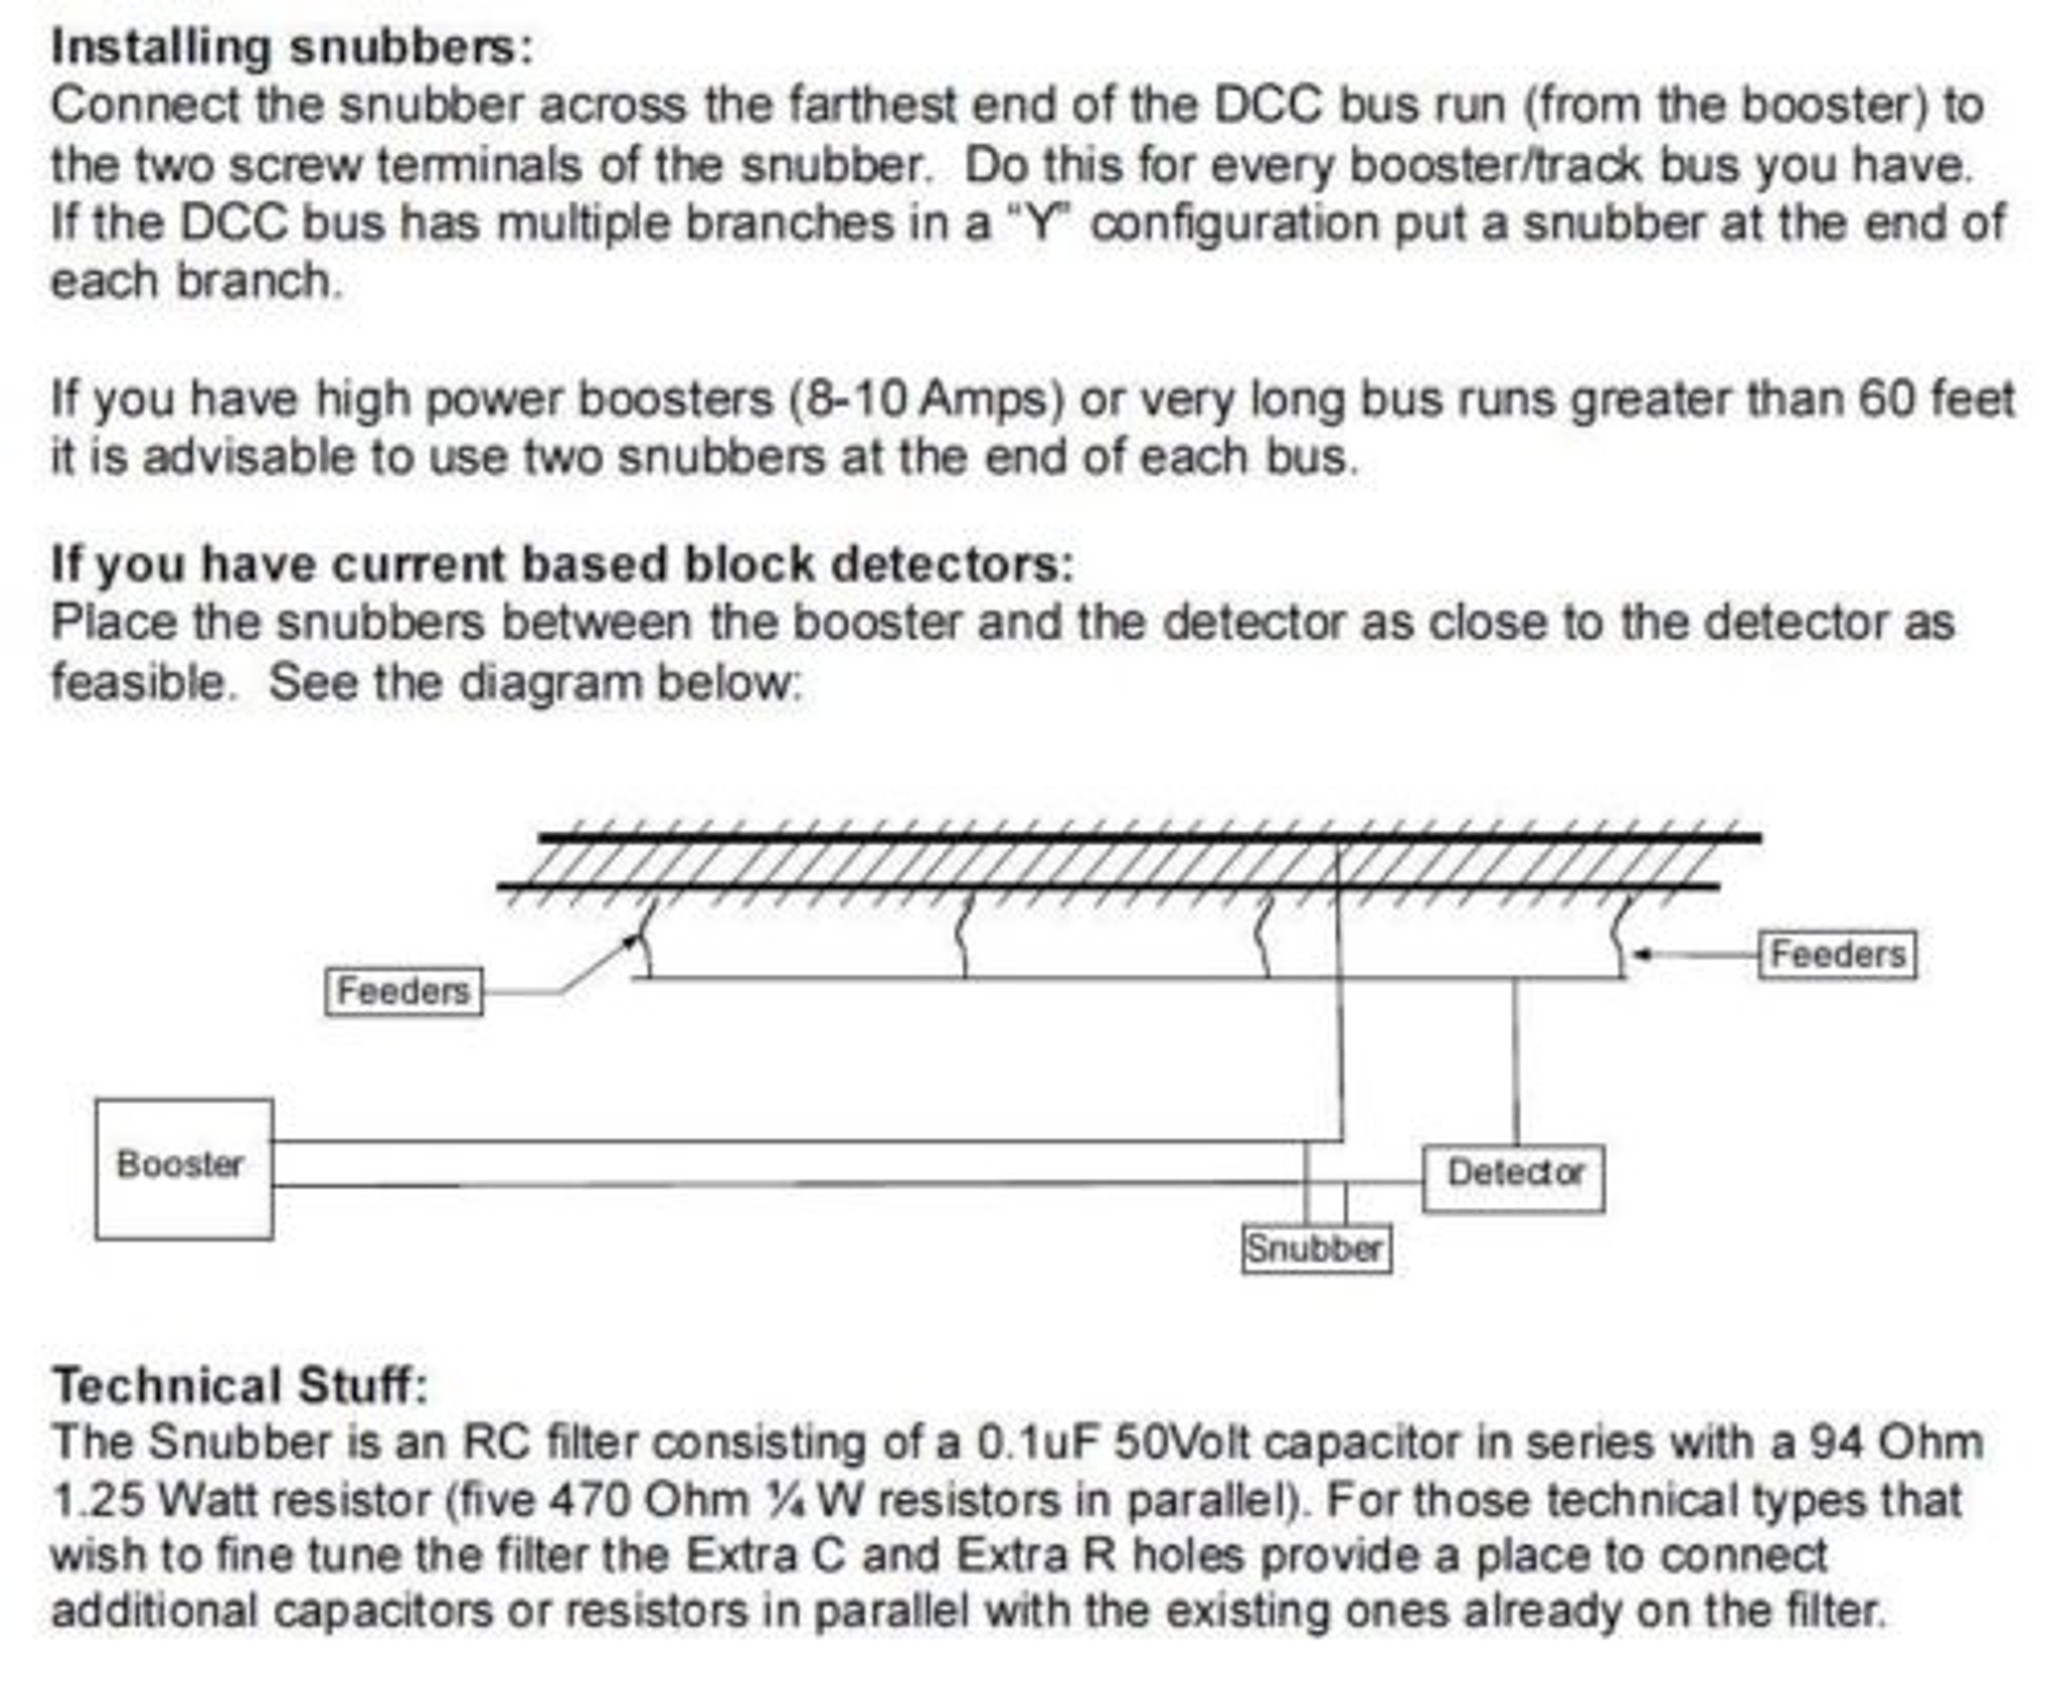 Cp6 Nce Wiring Diagrams - Schema Diagram Preview Nce System Wiring Diagram on